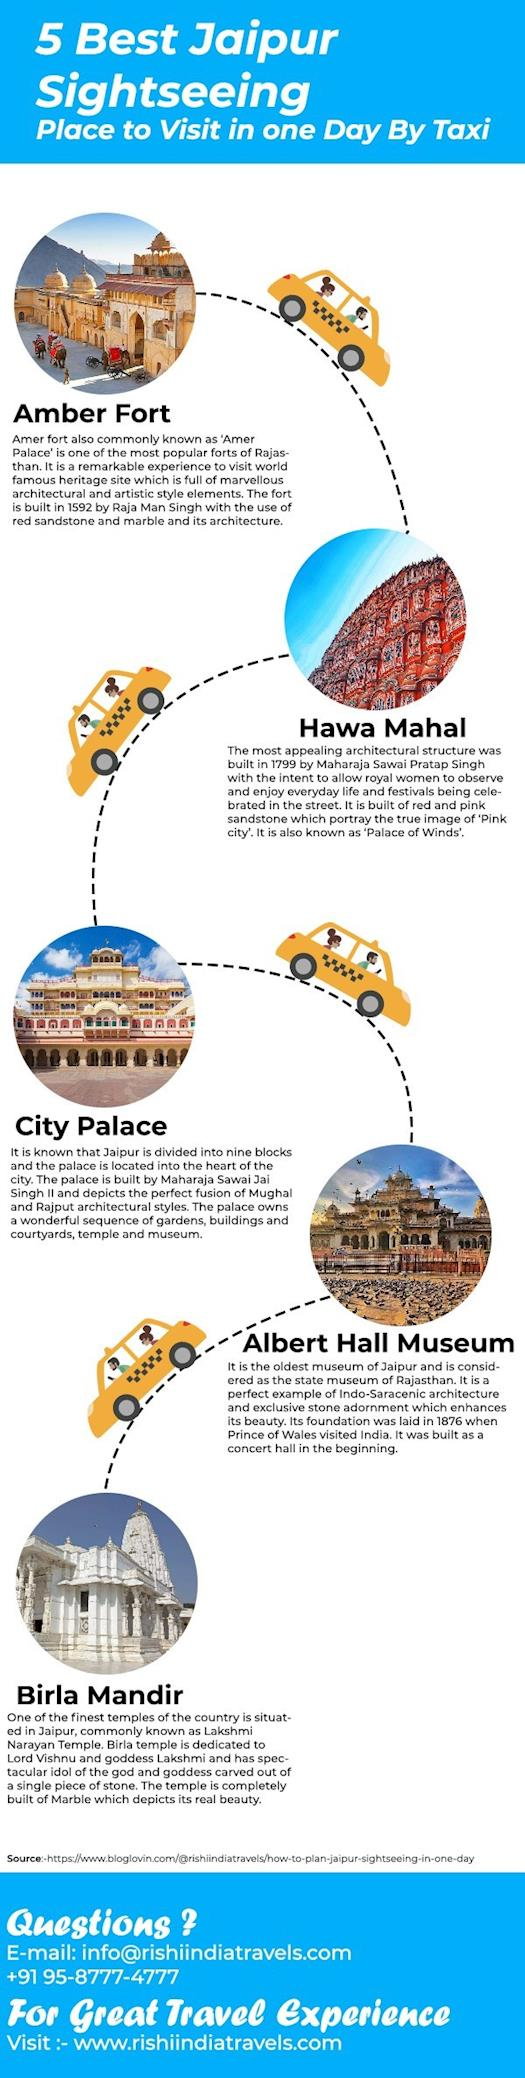 5 Best Sightseeing in Jaipur One Day